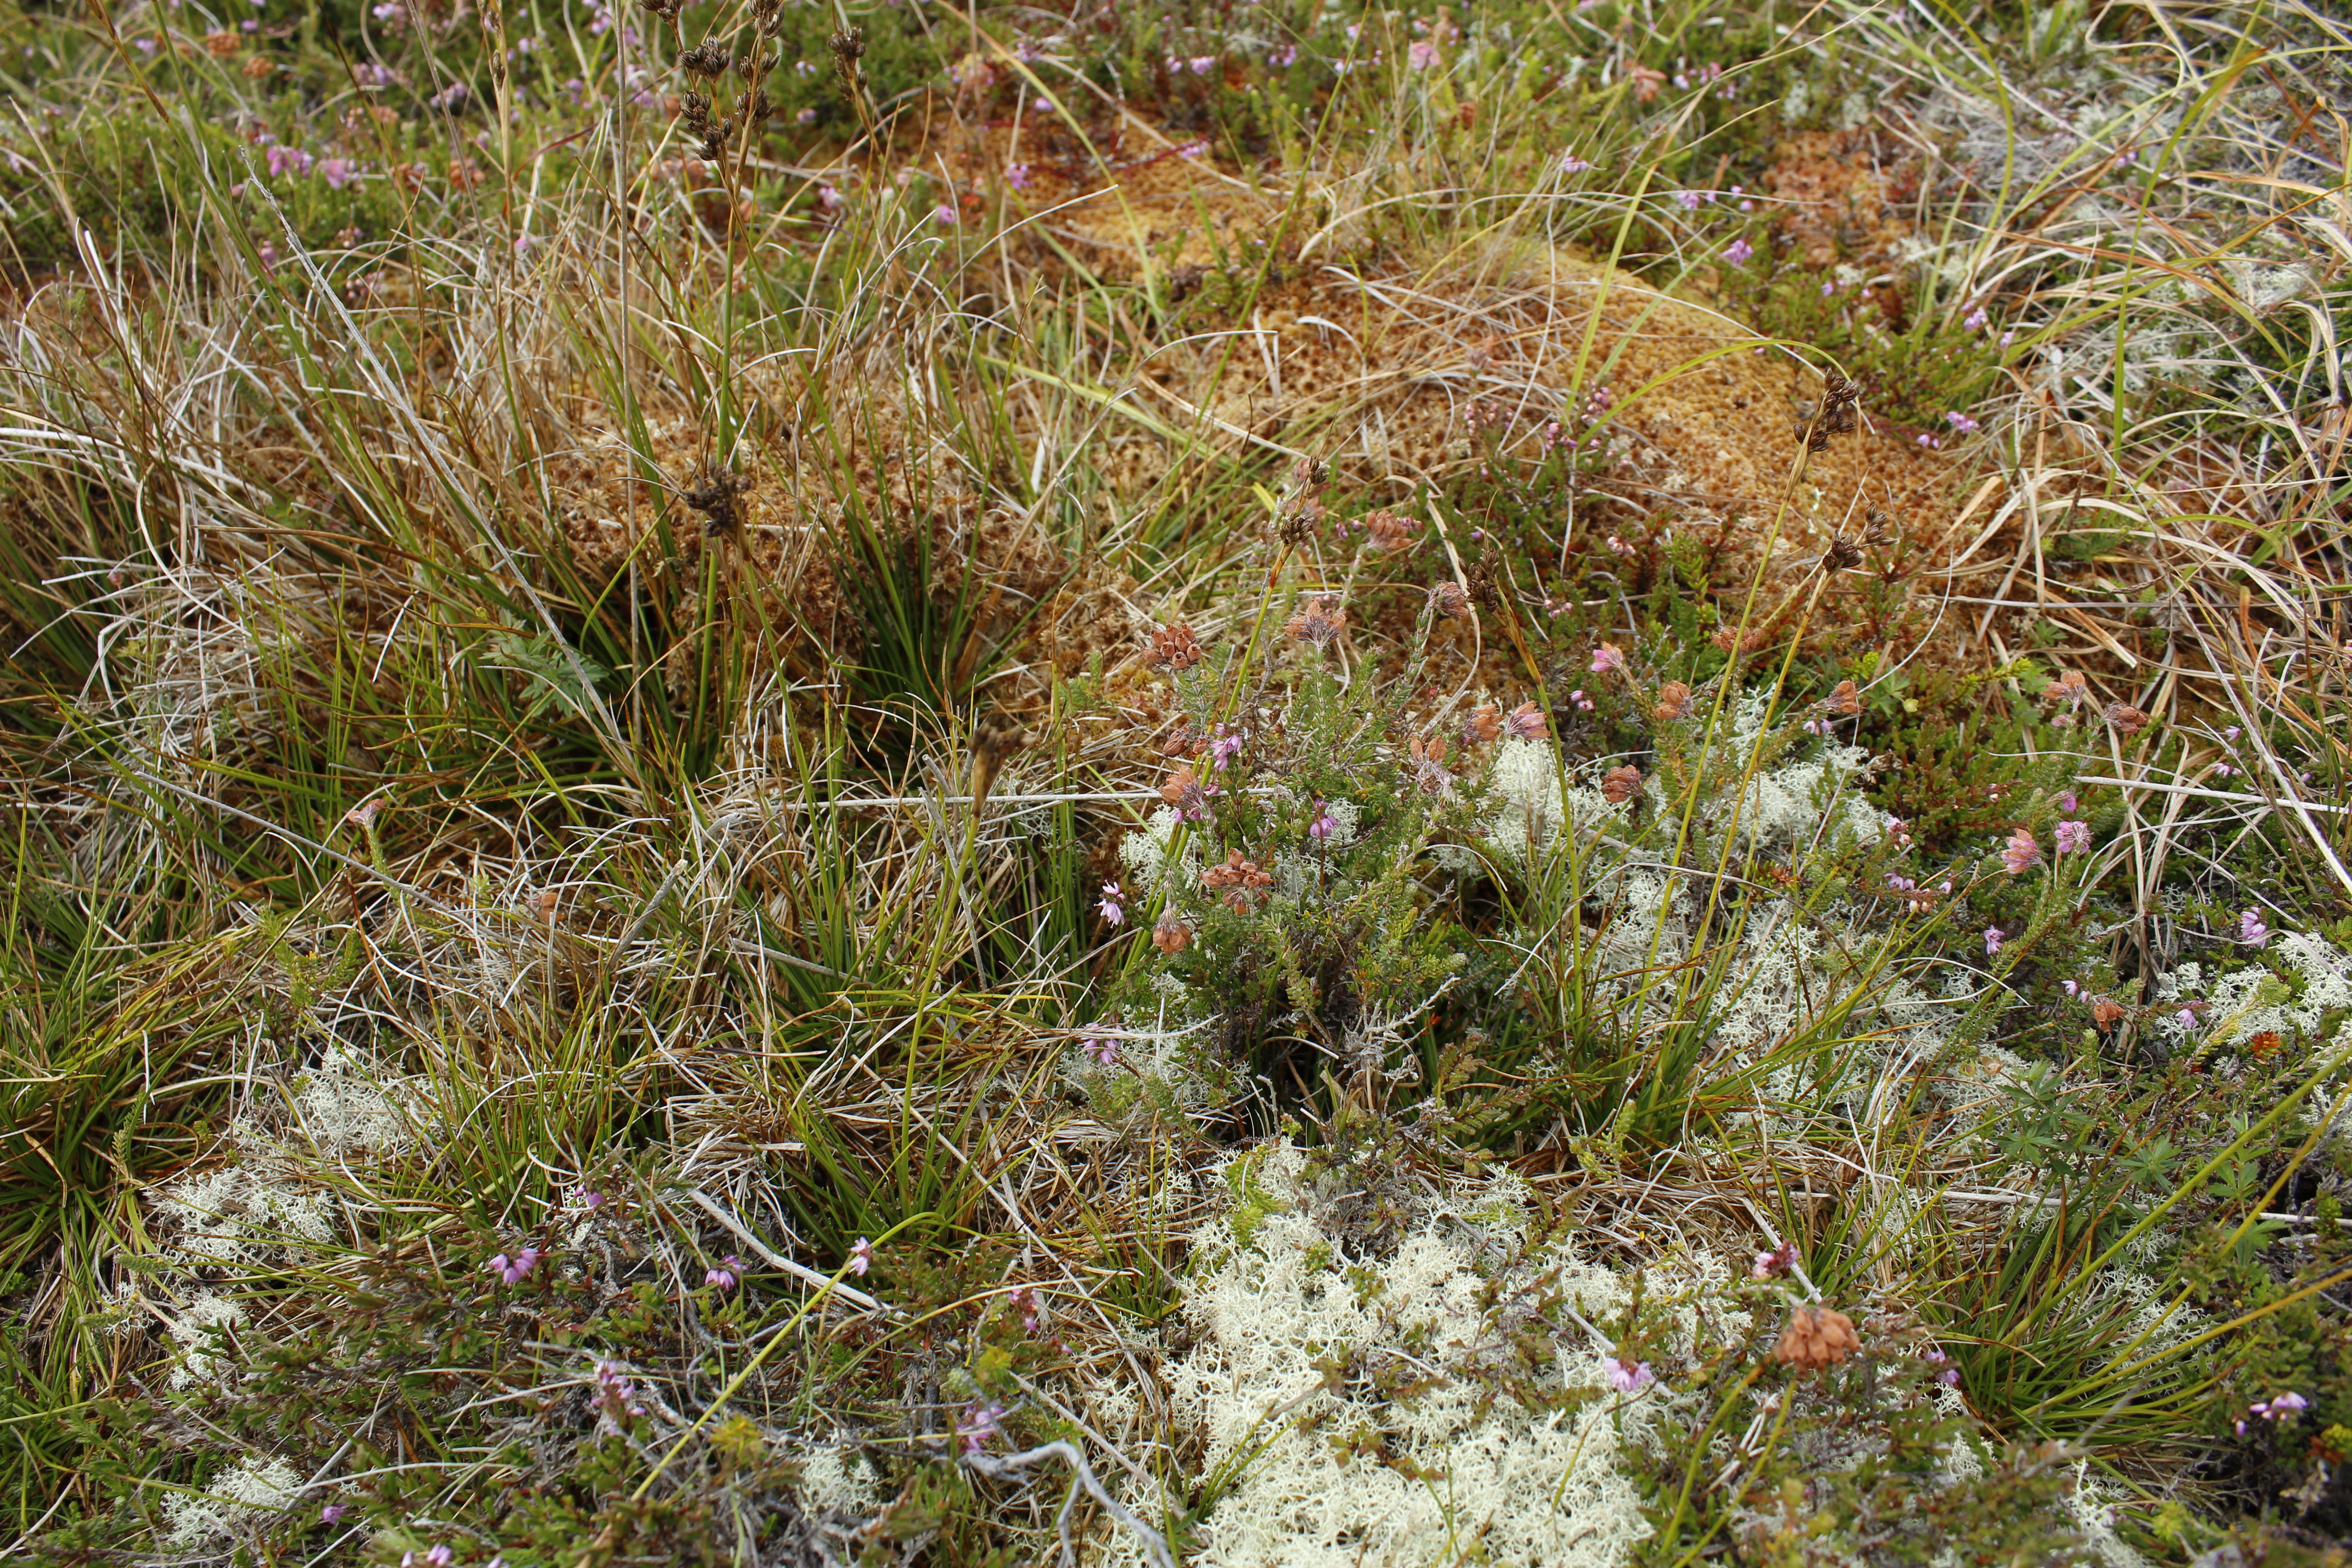 Moss on the estate is quite fascinating